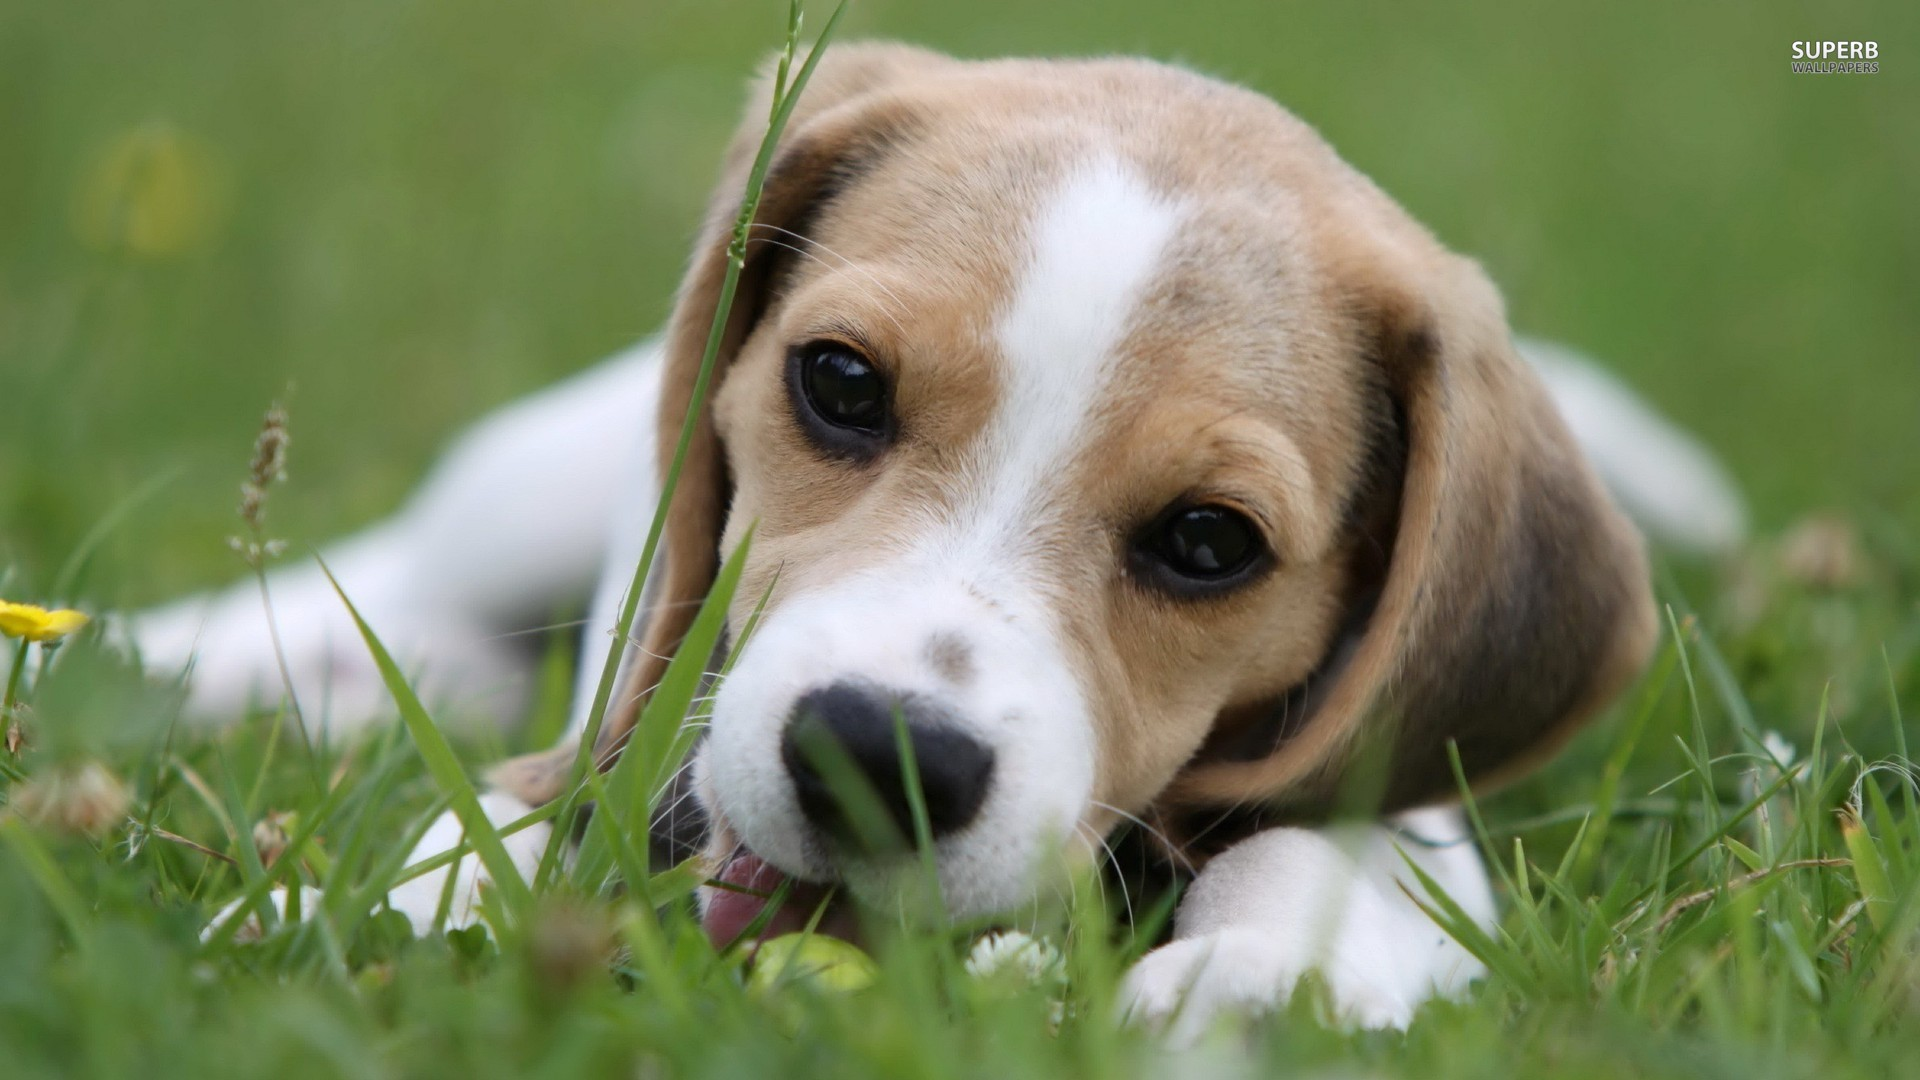 Cute beagle dog lying on the grass wallpapers and images   wallpapers 1920x1080